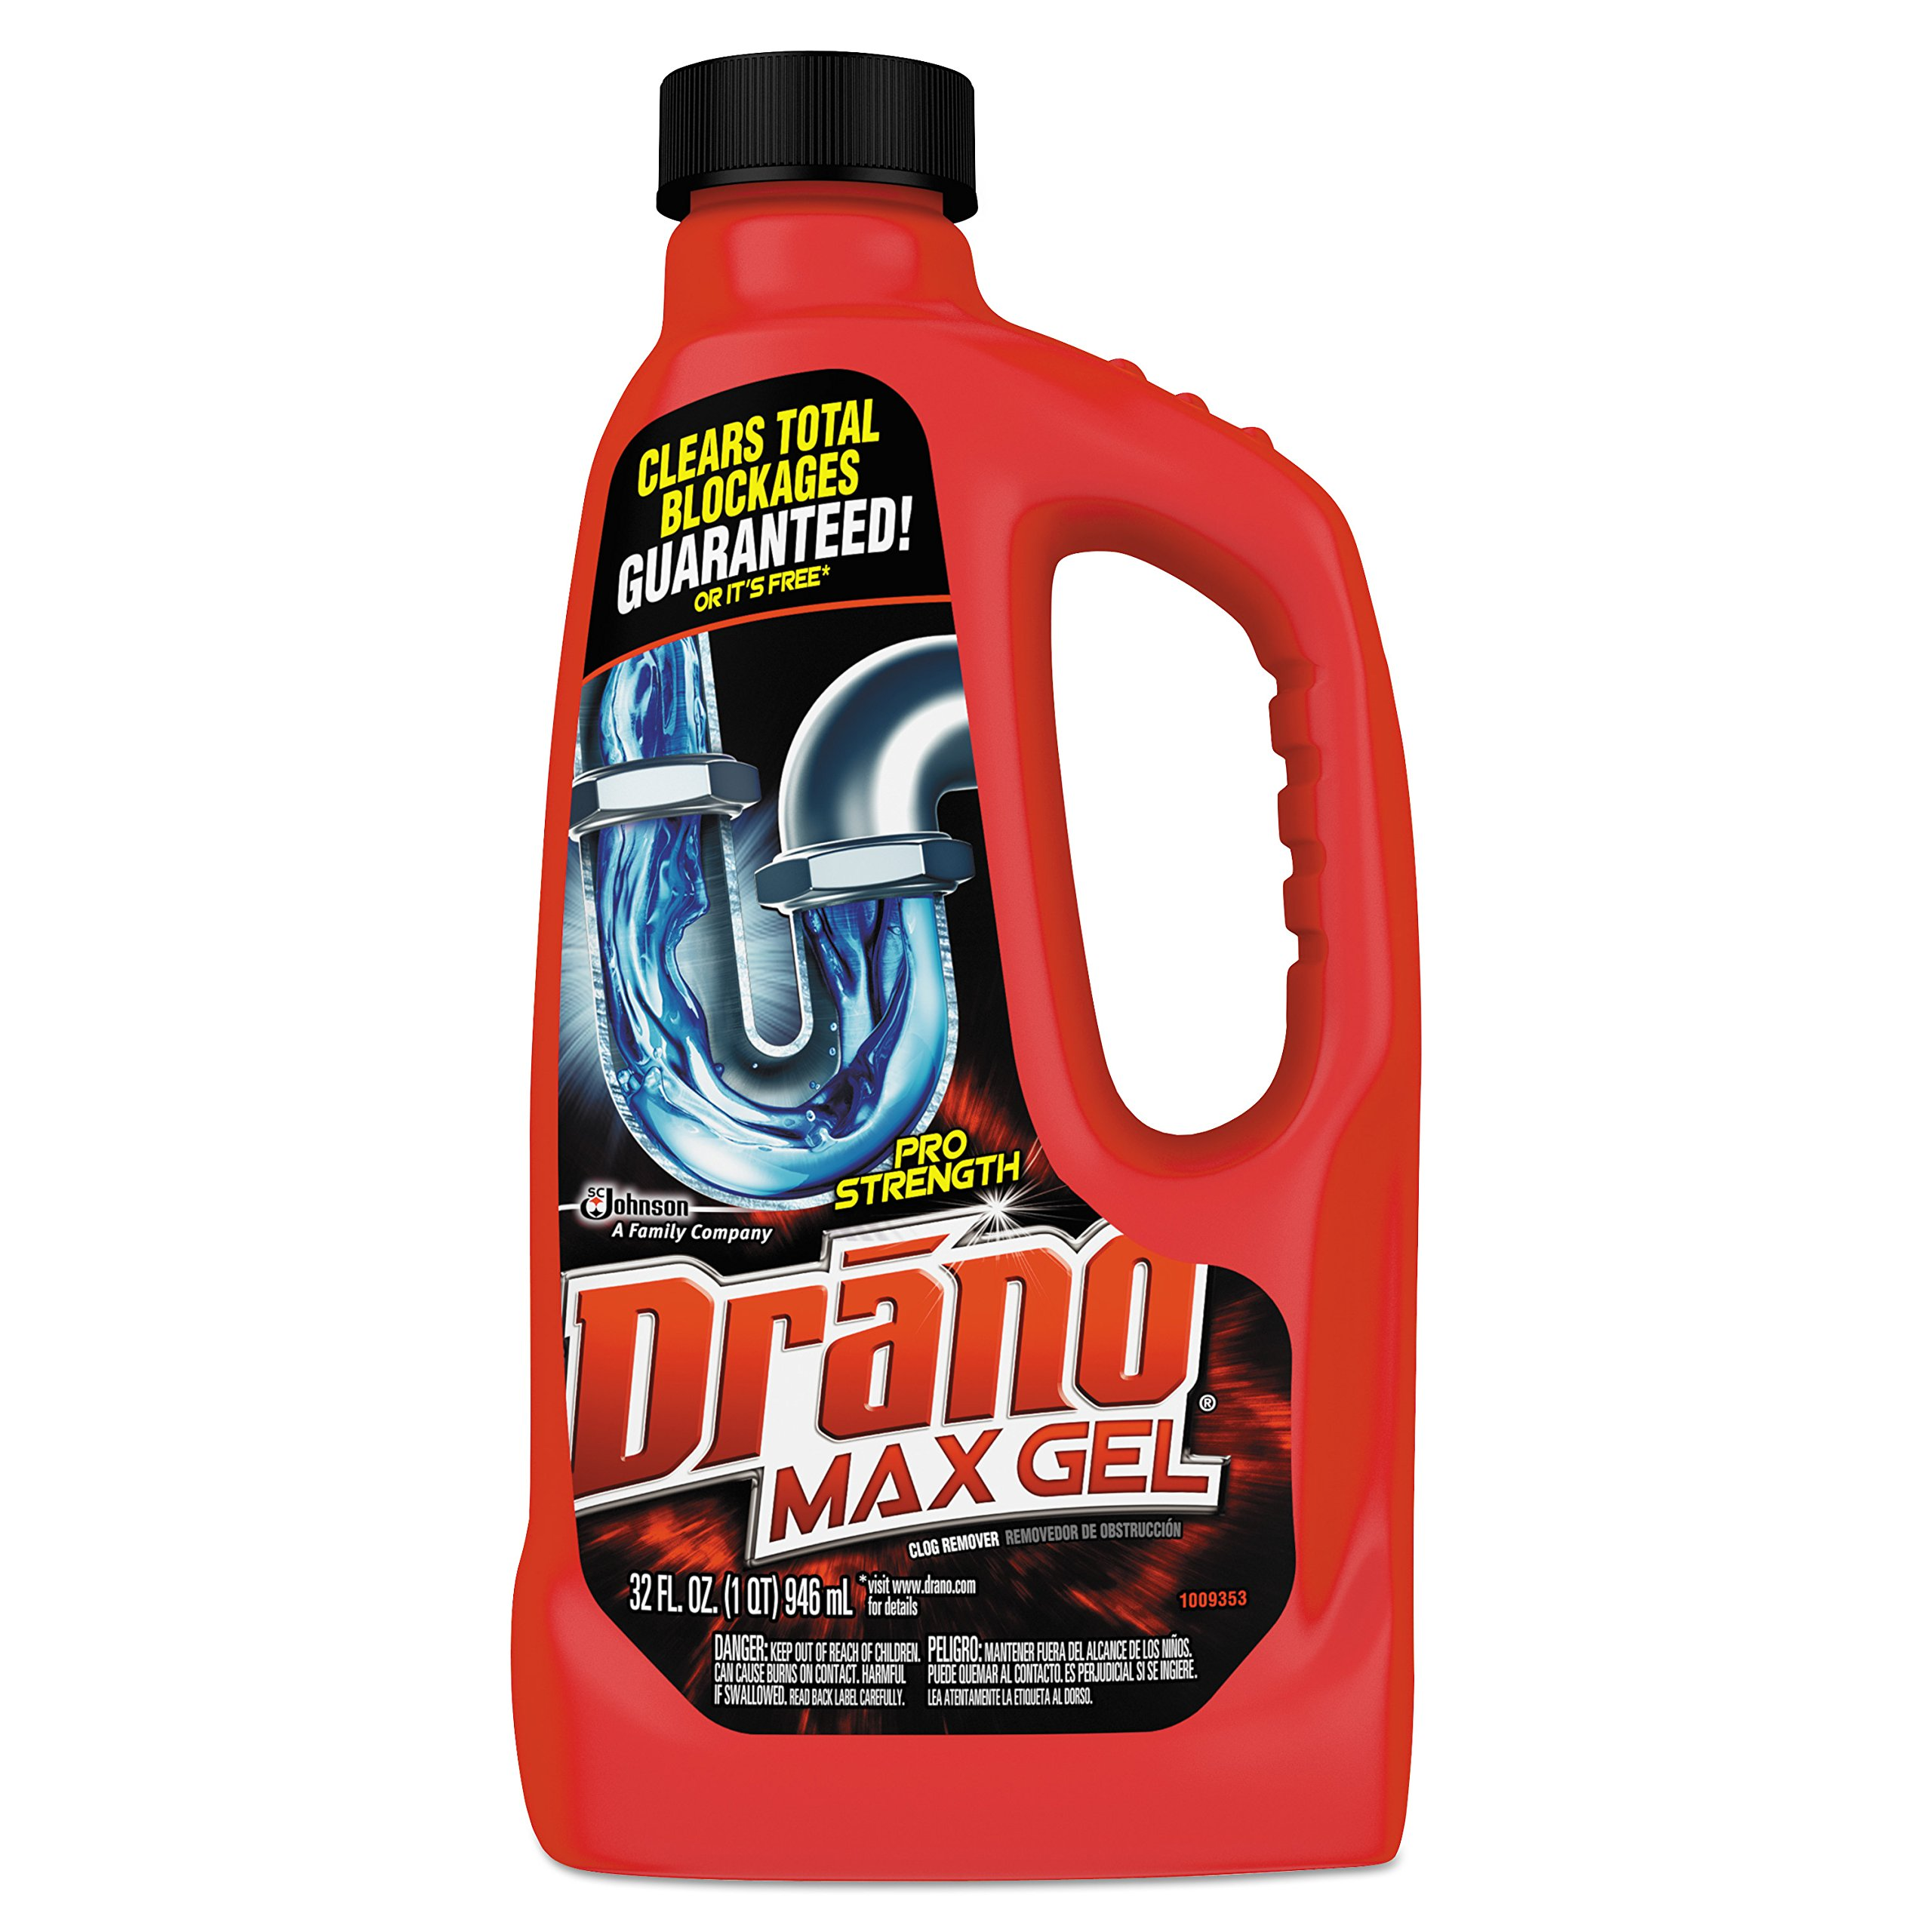 Drano 694768 Max Gel Clog Remover, 32oz Bottle (Case of 12)